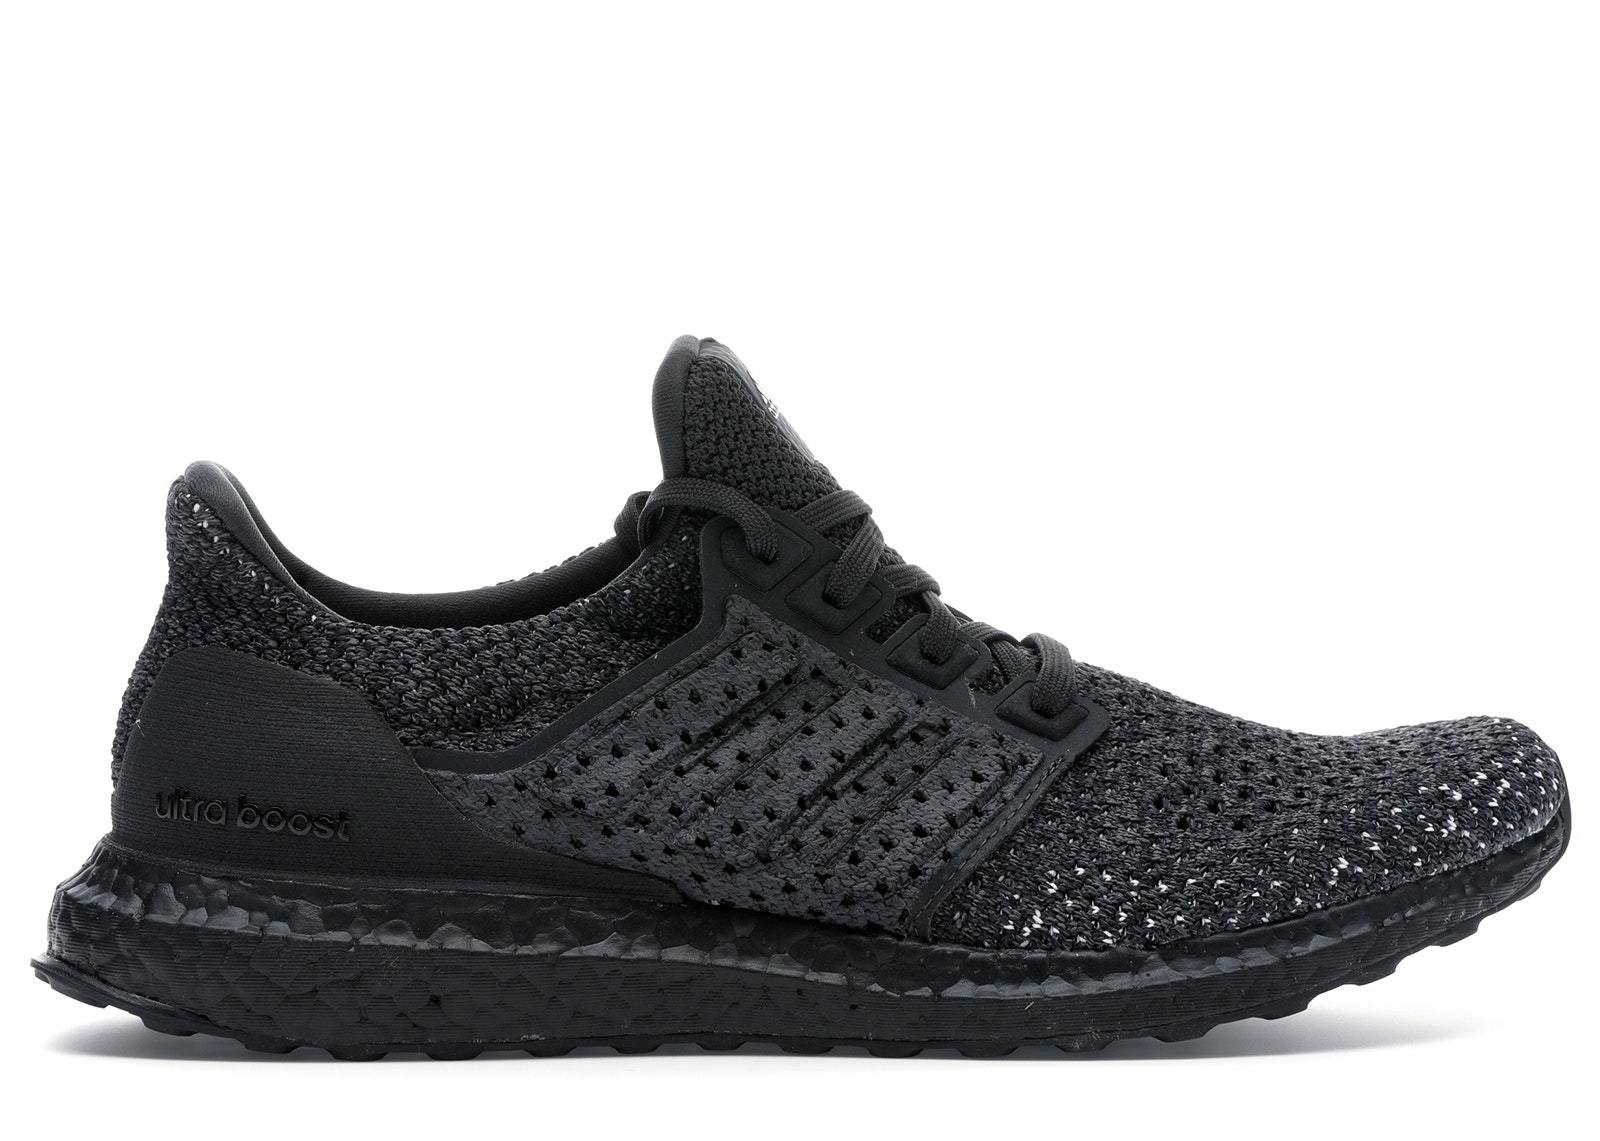 adidas Ultra Boost Clima Black